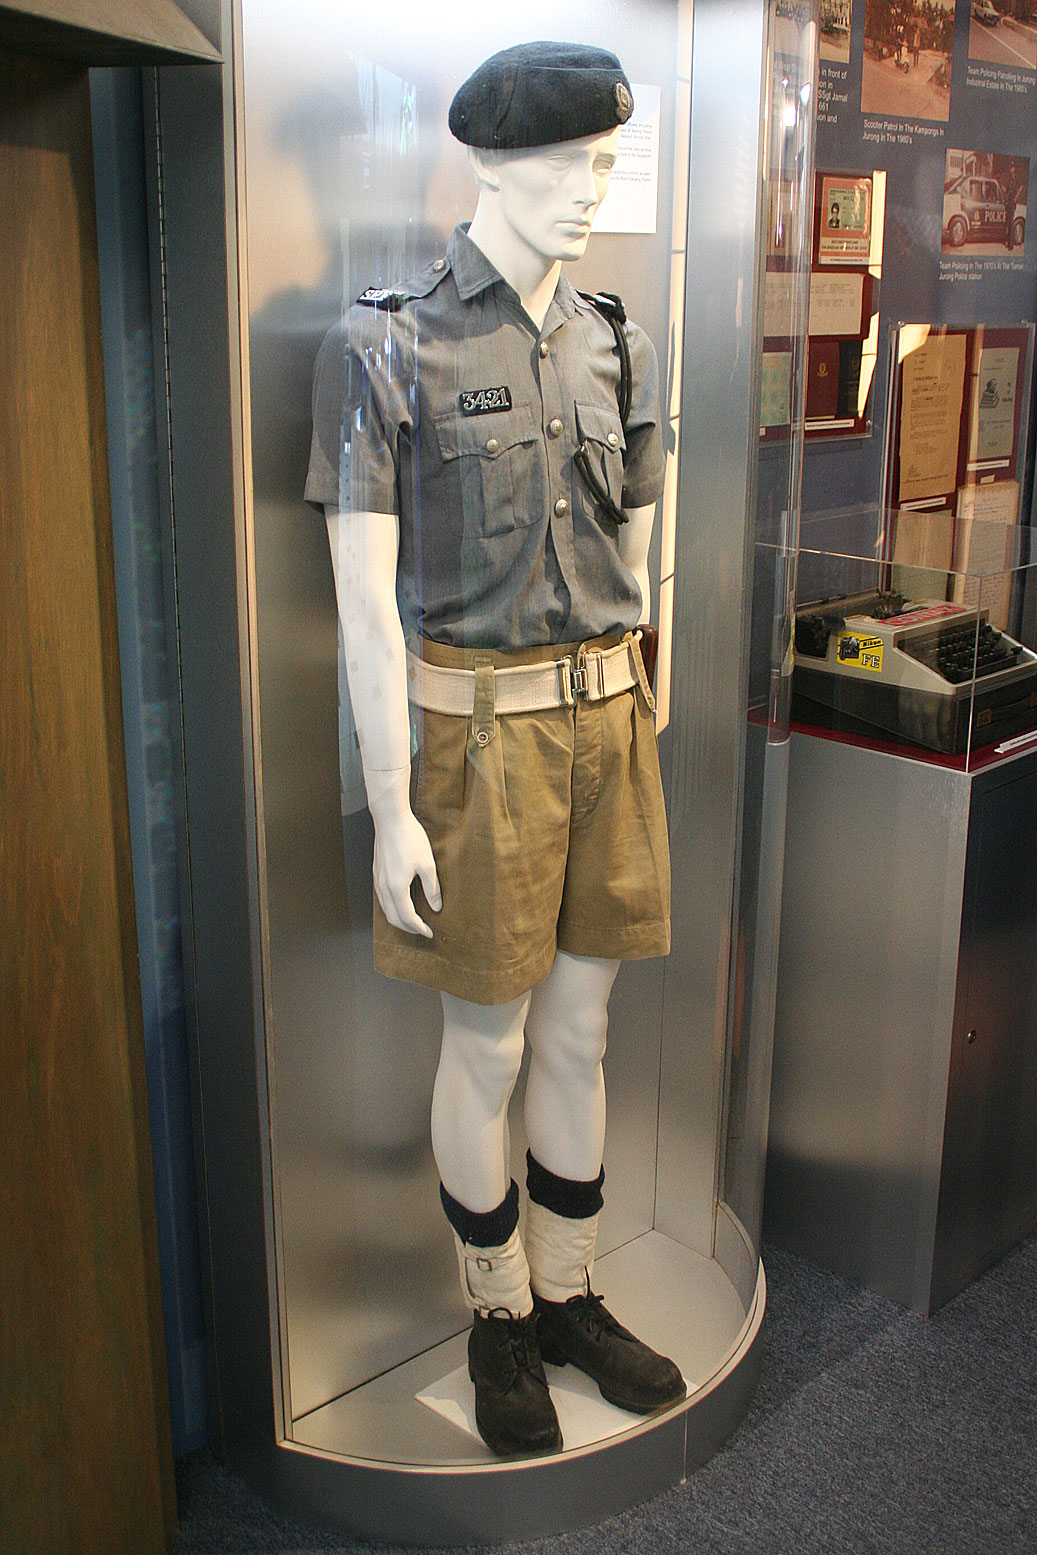 Uniforms of the Singapore Police Force - Wikipedia